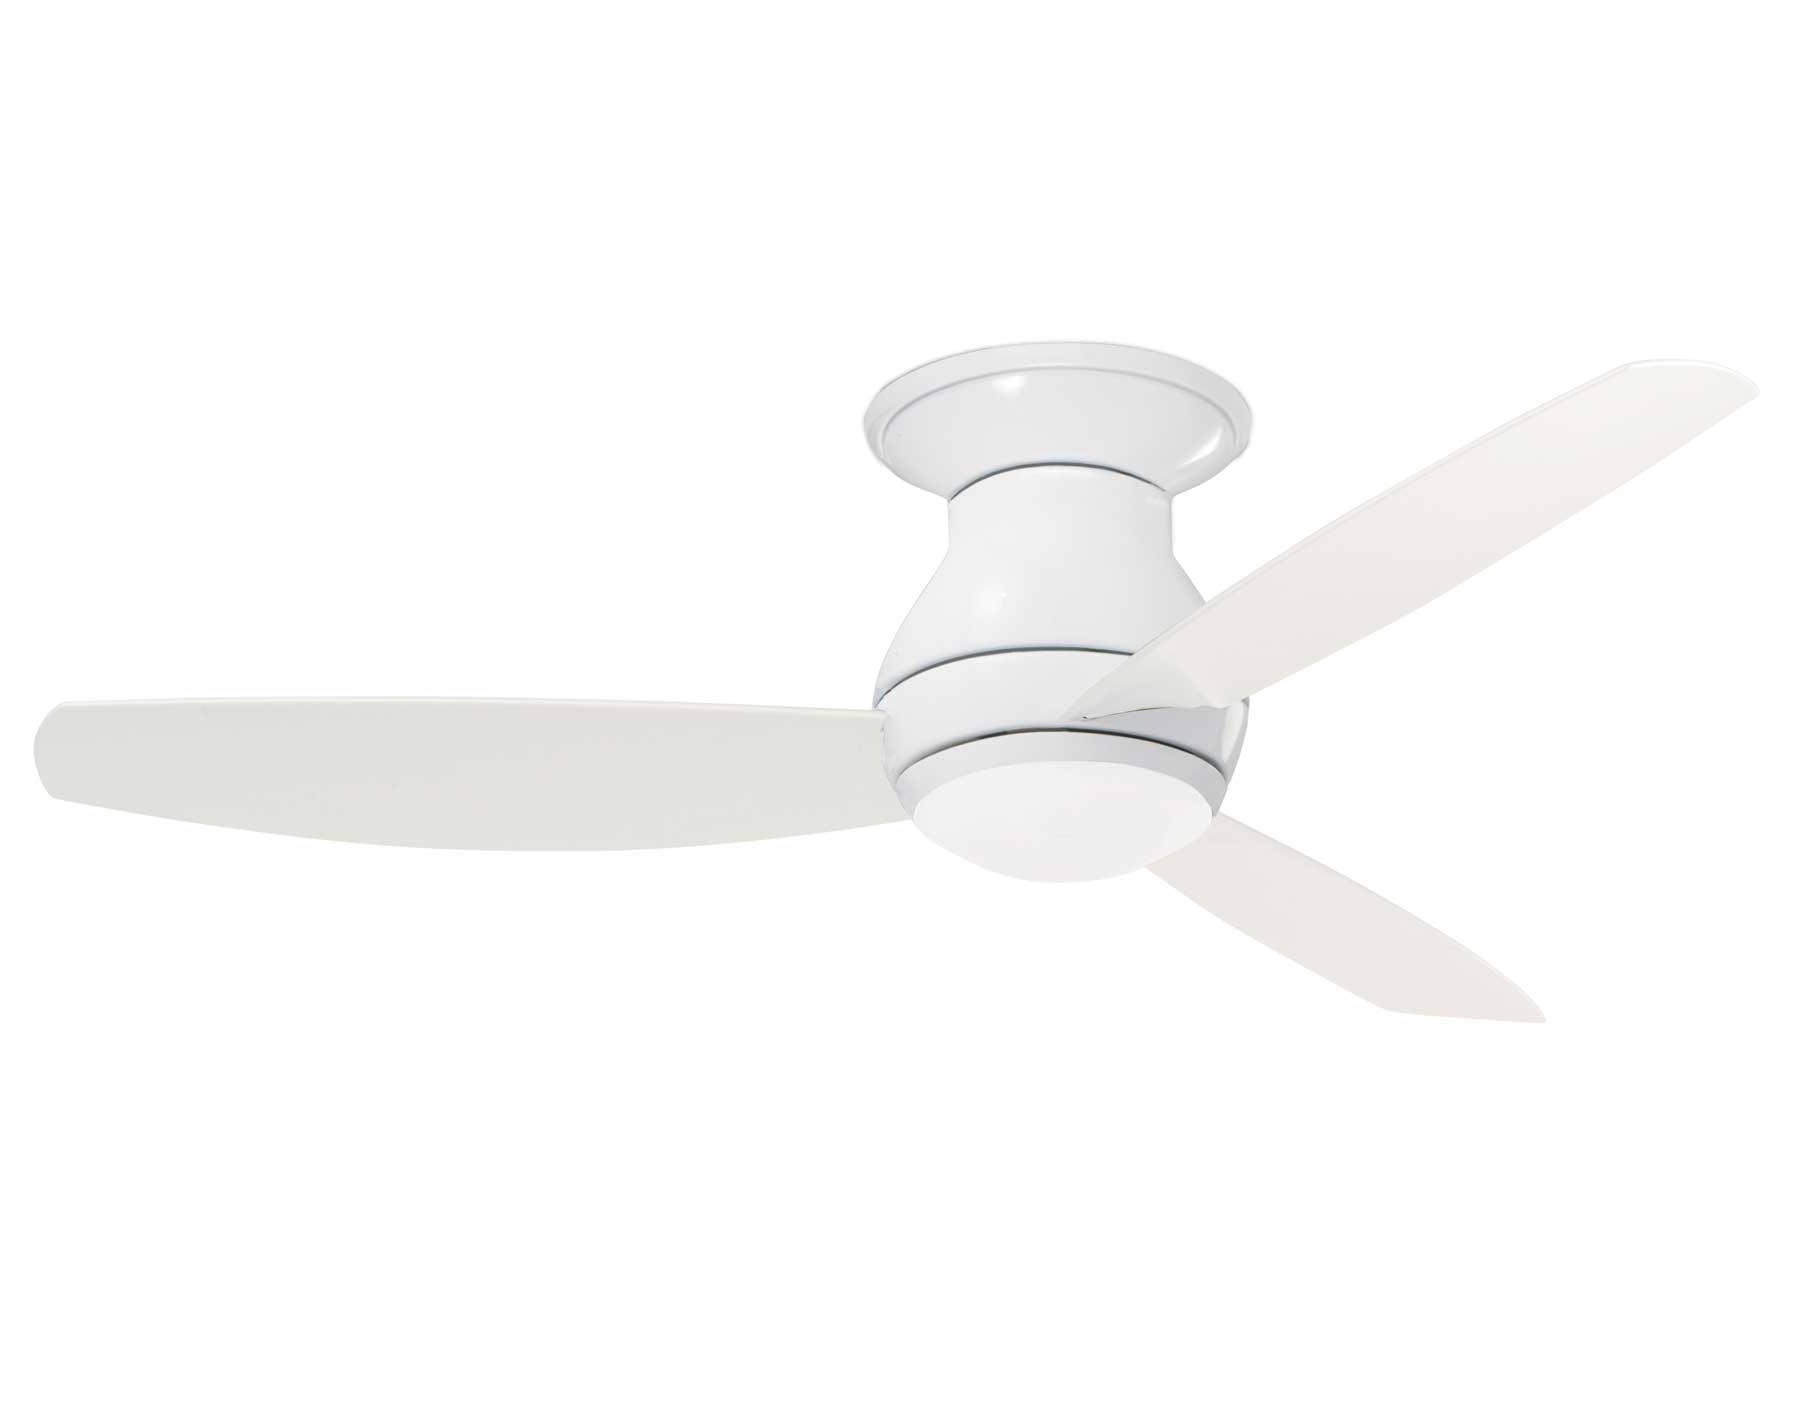 Ceiling Lights : Beautiful Outdoor Ceiling Fan With Light Wet Rated With Regard To Most Recent Wet Rated Outdoor Ceiling Fans With Light (View 6 of 20)